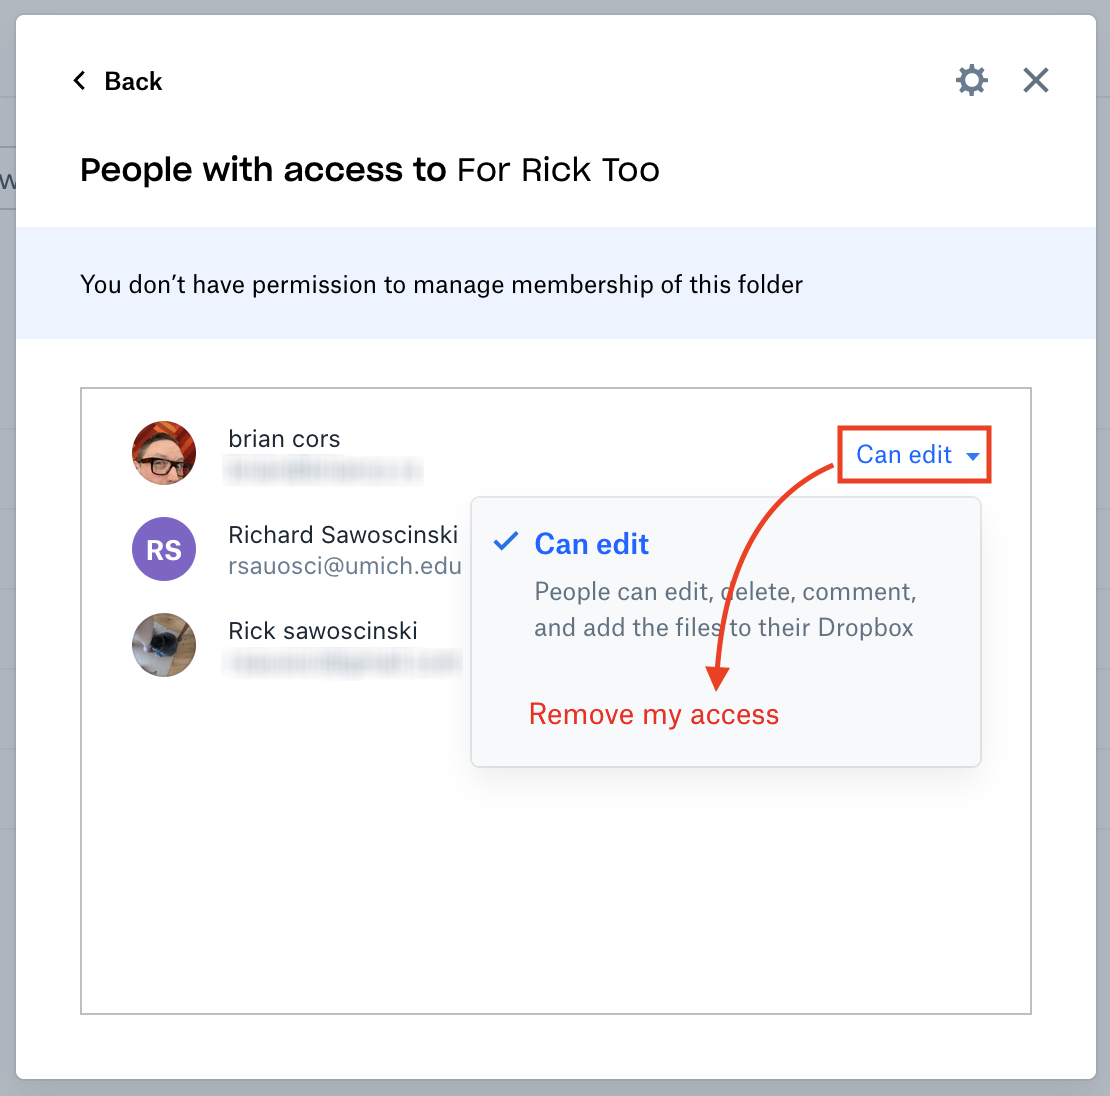 The list of people who have access to the file. Three are listed, and one has been clicked so the drop-down menu appears. There are two options: Can edit and Remove my access. Remove my access is highlighted in red with an arrow pointing toward it.